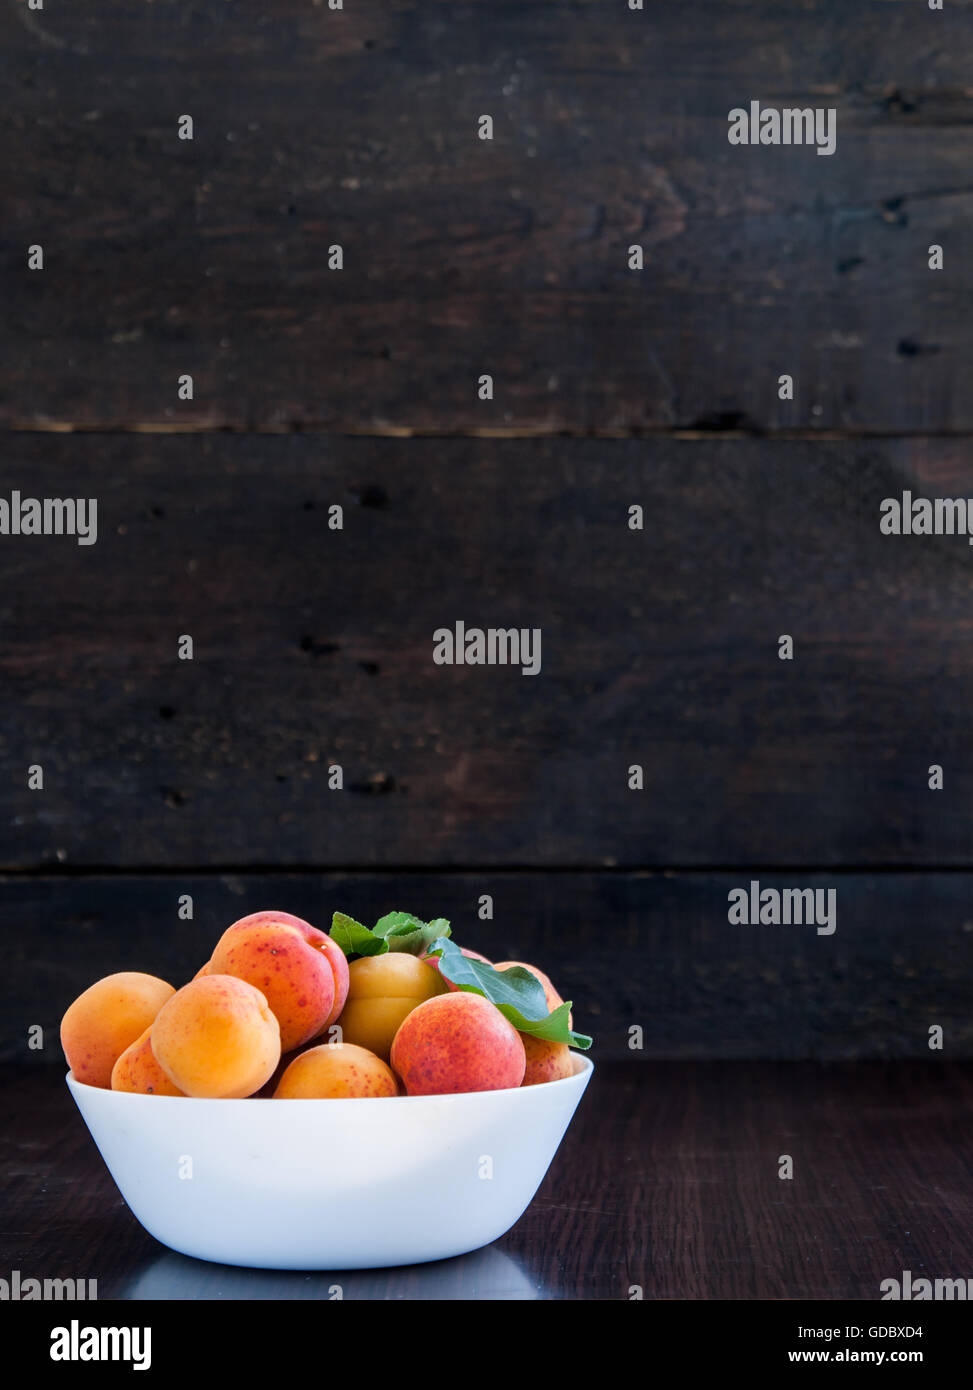 bowl with apricots on a wooden background. - Stock Image